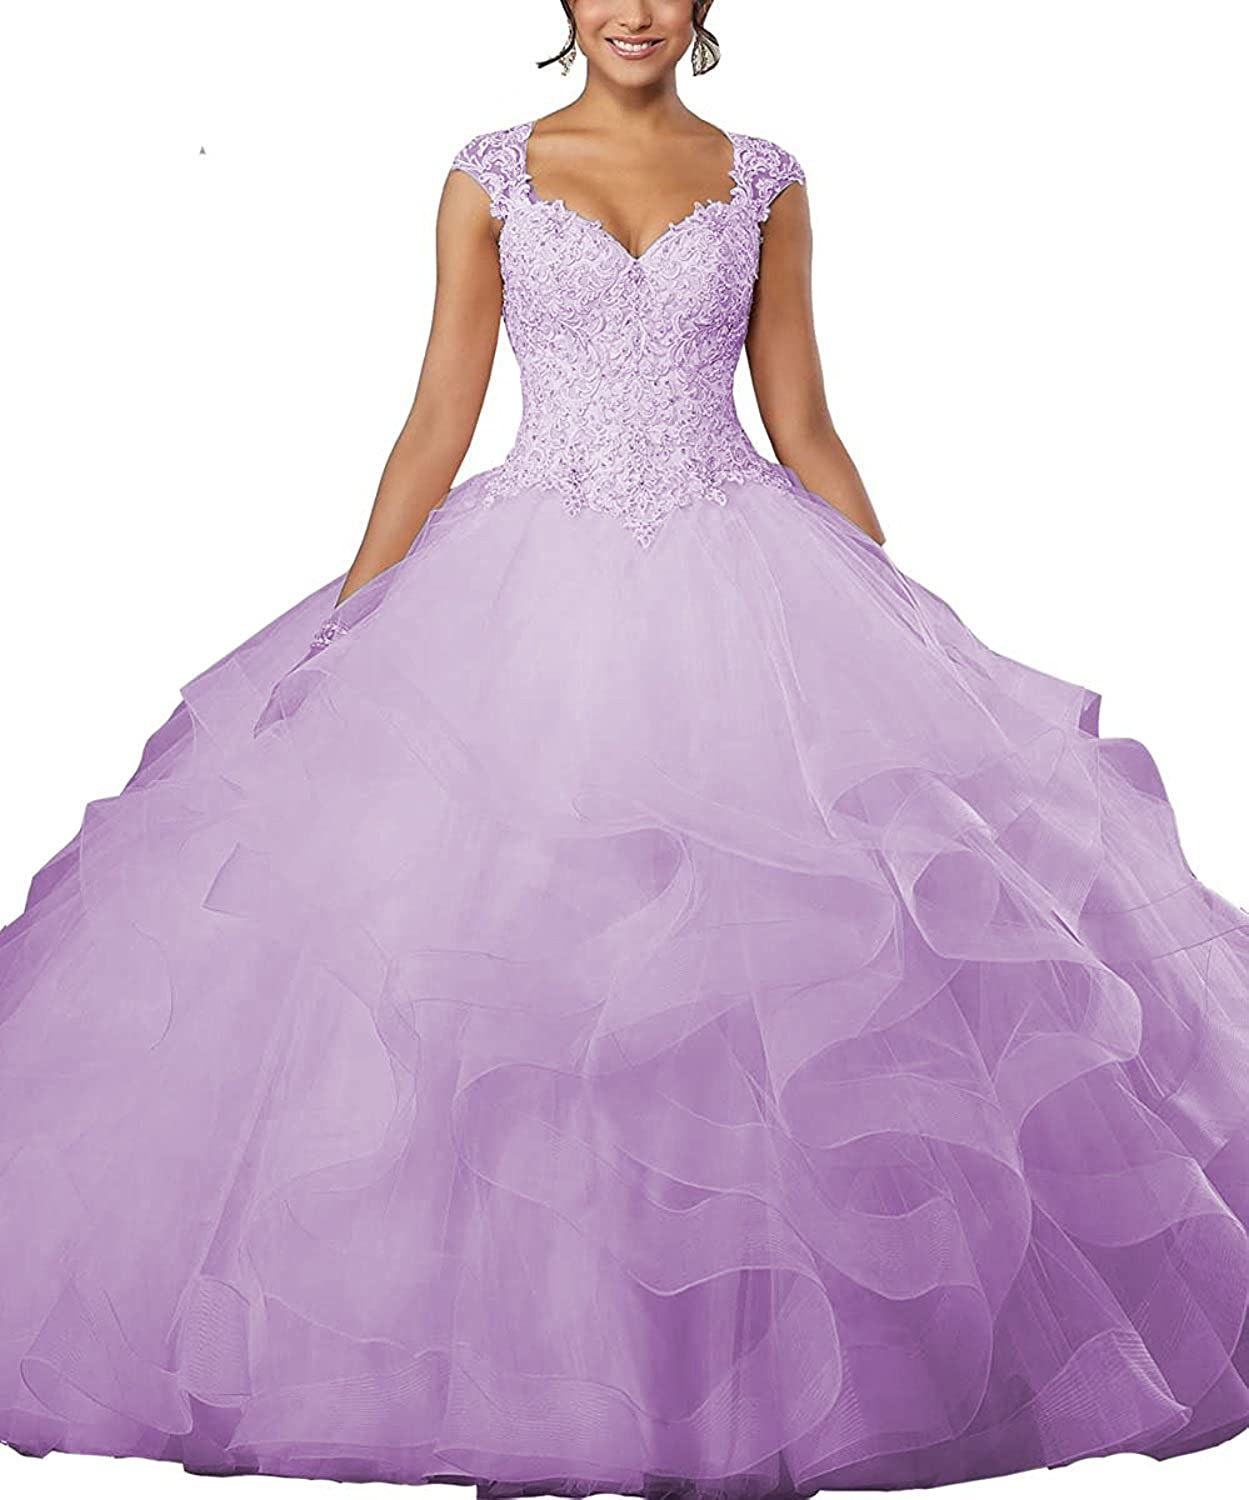 JQLD Women Sweetheart Crystal Beaded Prom Gown Sleeveless Ball Gown Quinceanera Dresses